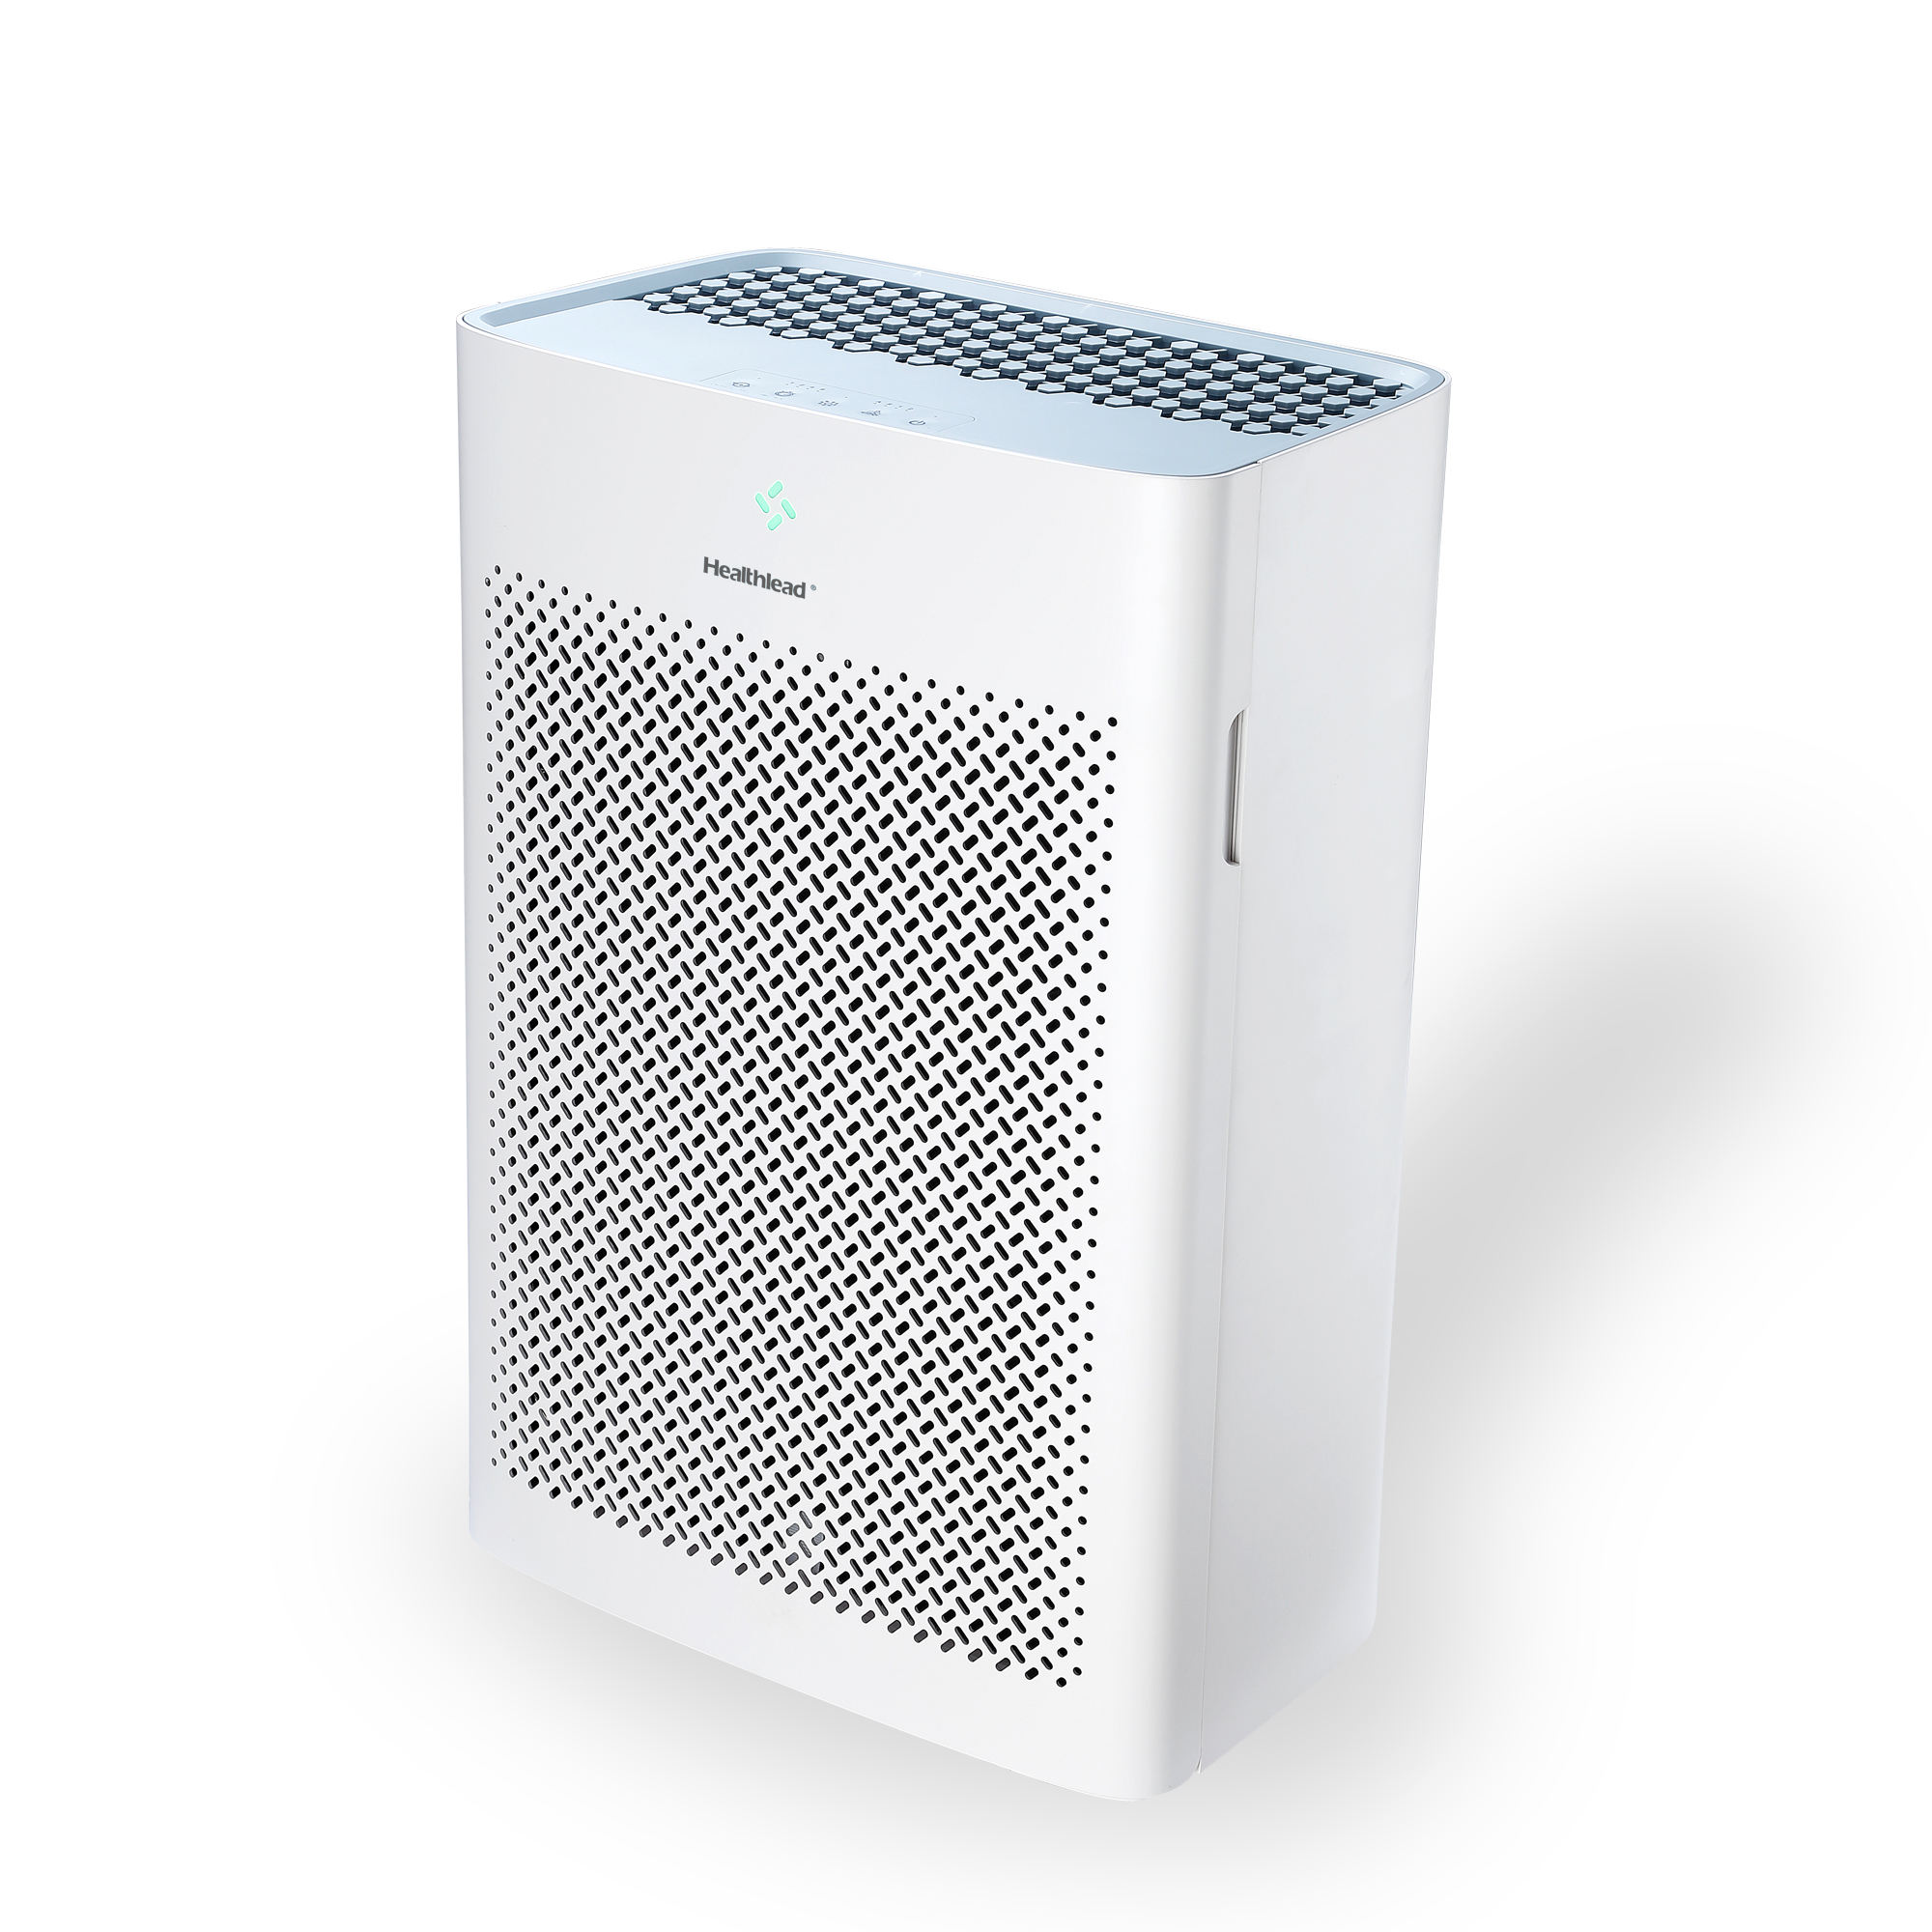 EPI328 household ionizer air purifier home hepa